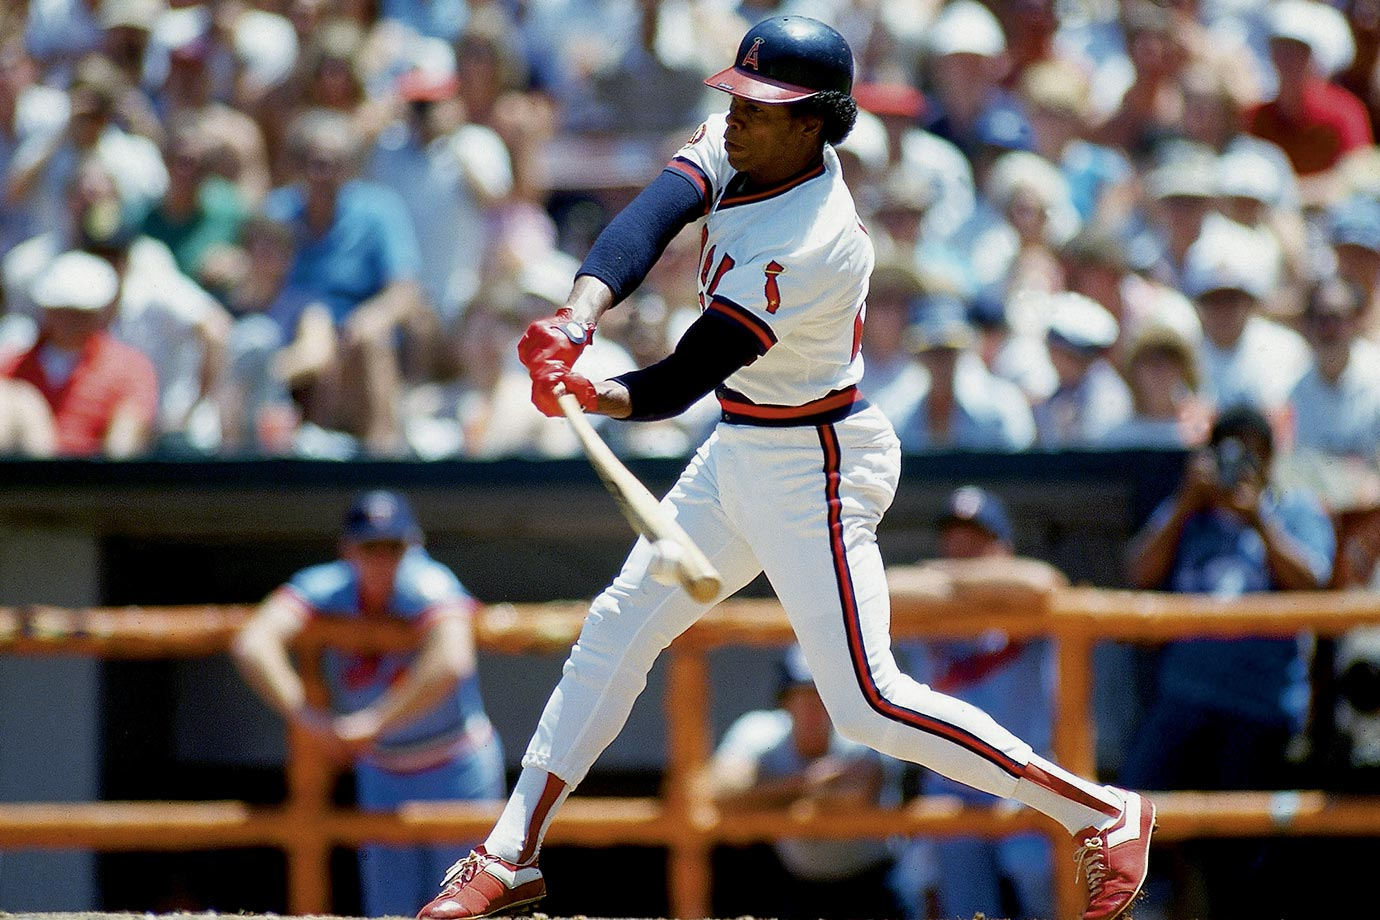 August 4, 1985 (3000th career hit)